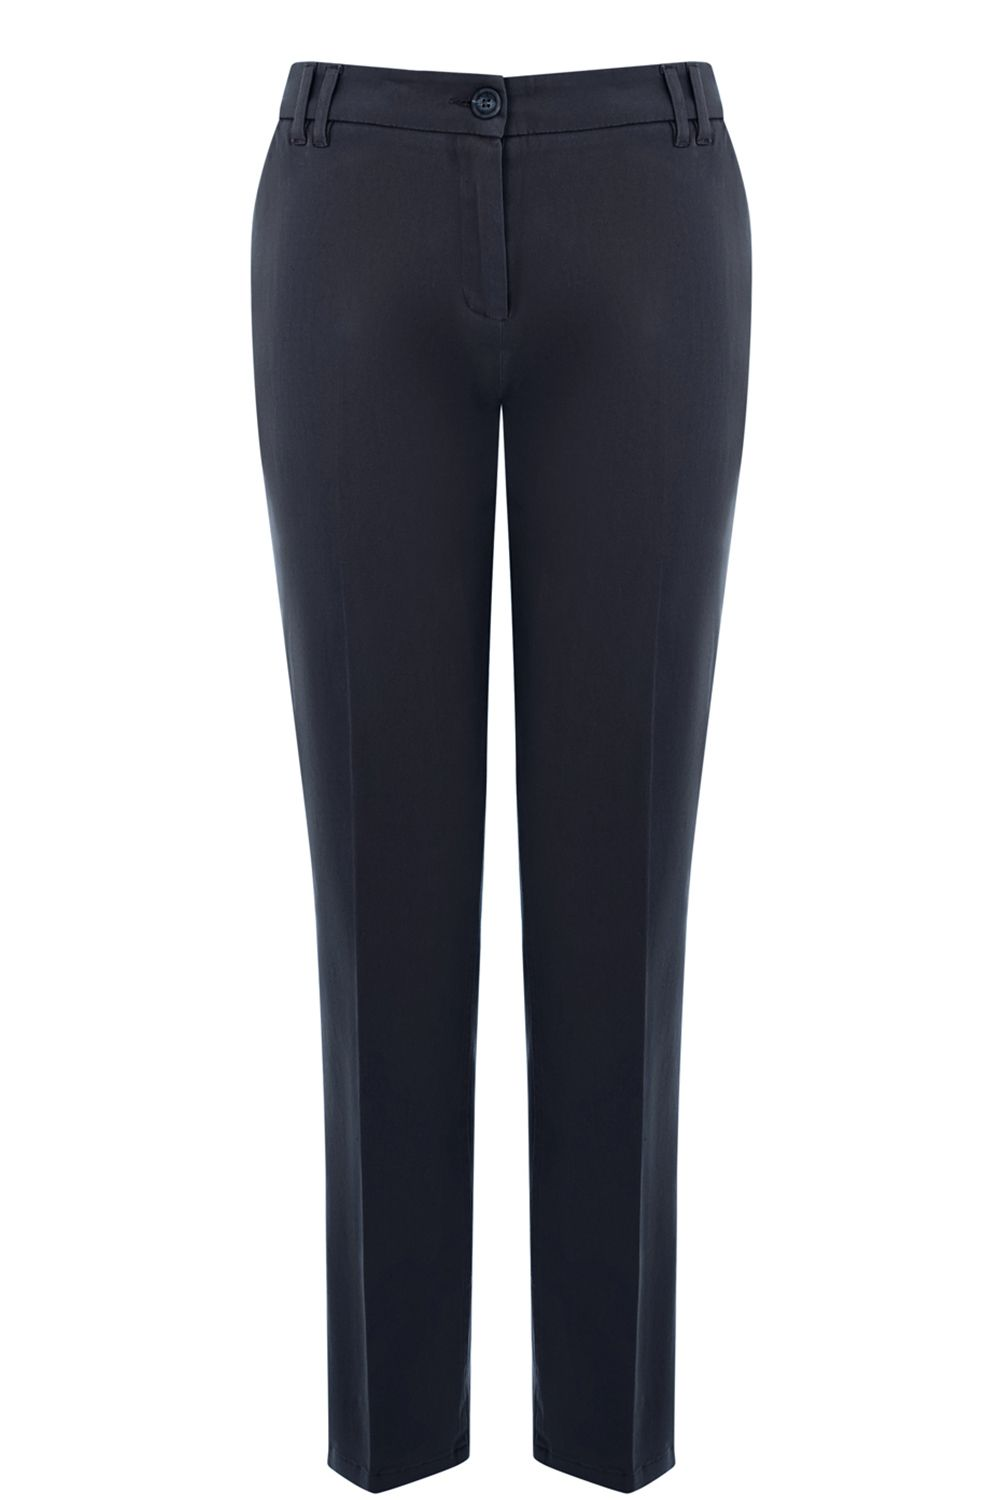 Oasis Emmy Chino Trouser, Blue